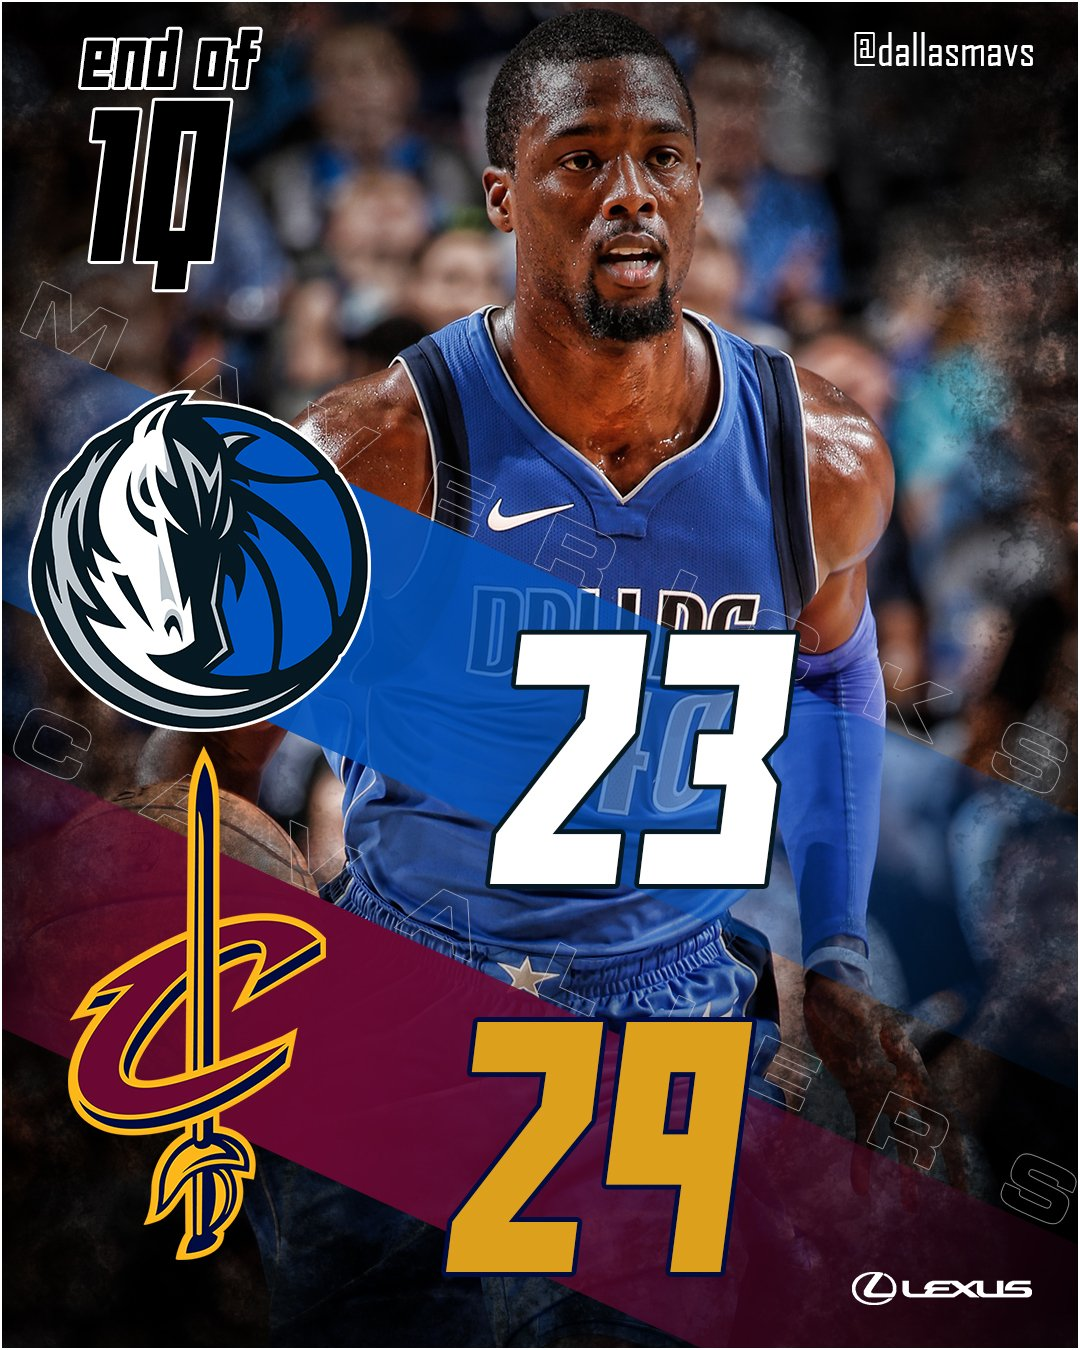 End of 1Q: Mavs trailing the Cavs 29-21. Dennis and Yogi w/5 points each. Dirk and Harrison each have 4. #DALvsCLE https://t.co/KTNHWJjDM1